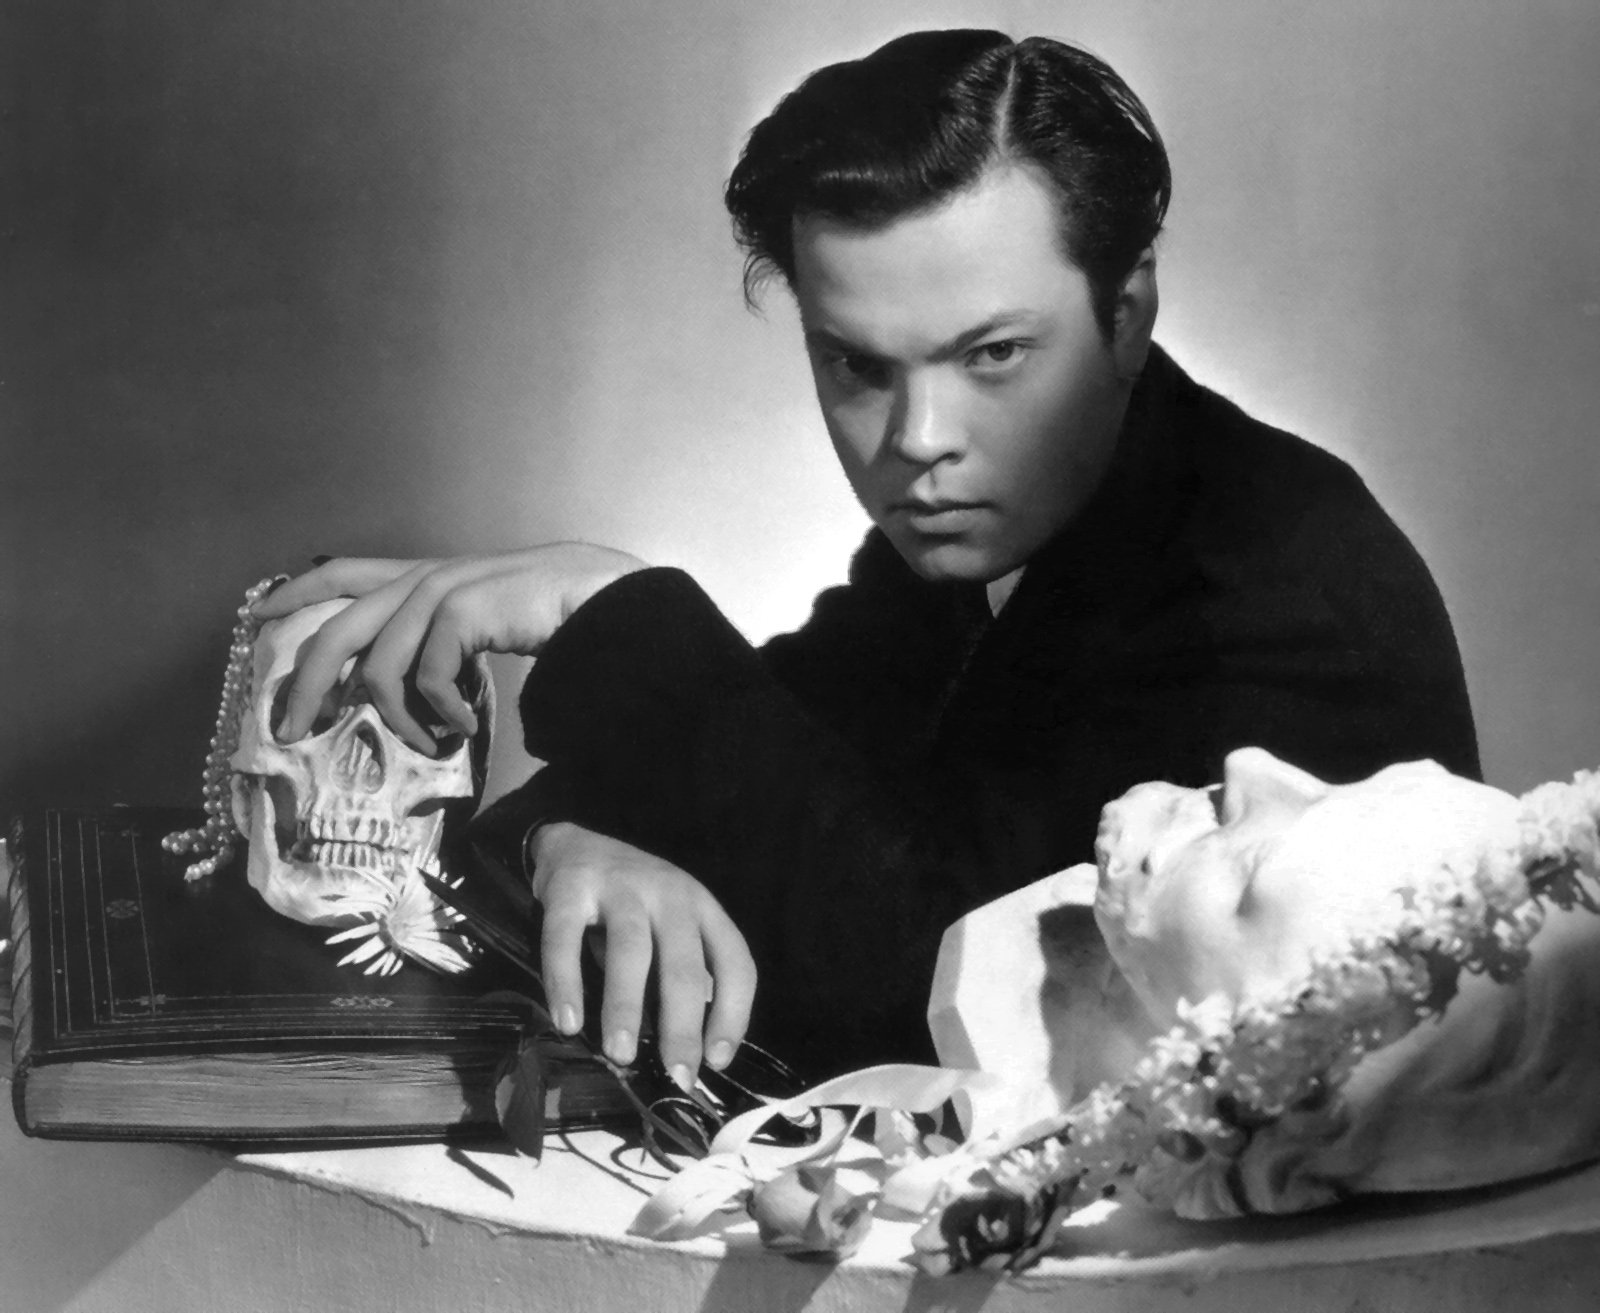 http://lounge.obviousmag.org/isso_compensa/2015/05/08/Orson_Welles_caveira.jpg